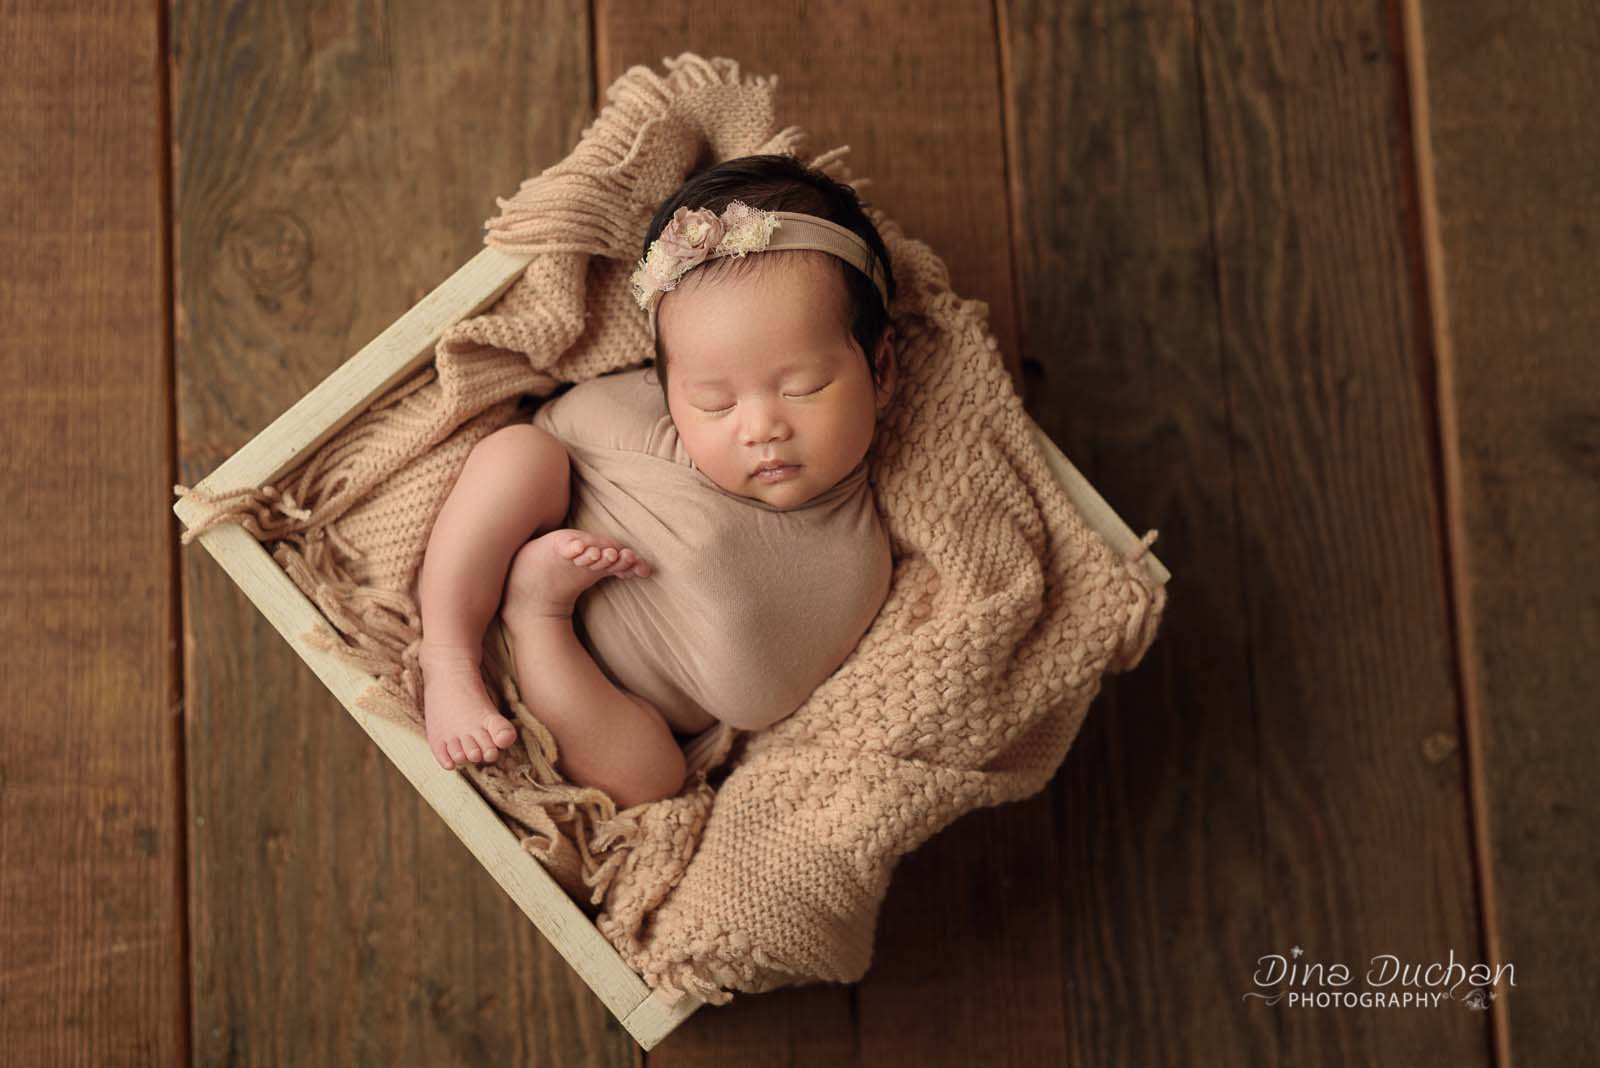 correct newborn pose for studio lighting, baby laying in c curve